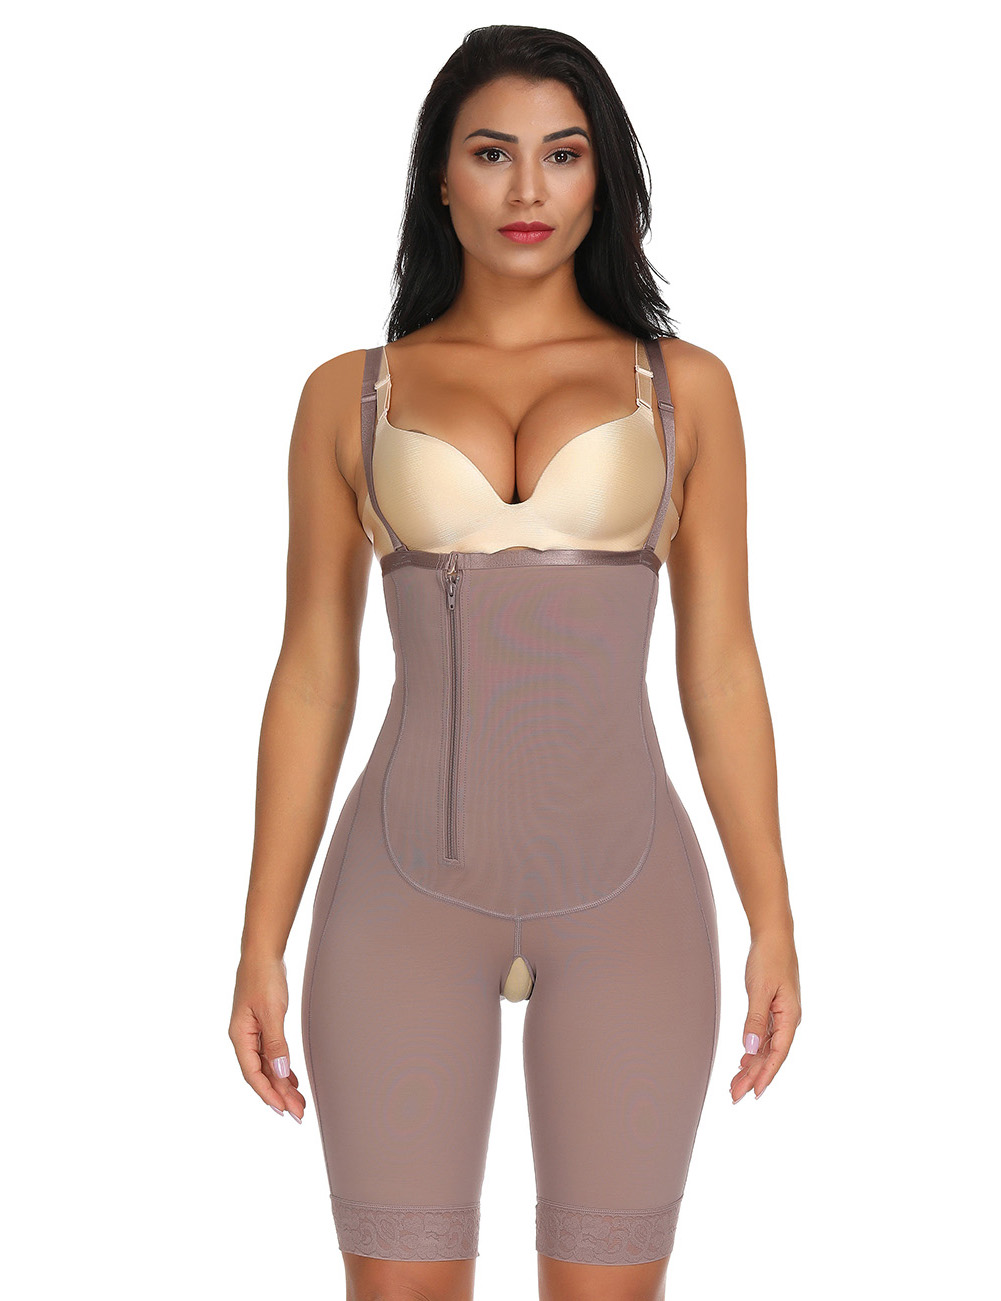 //cdn.affectcloud.com/hexinfashion/upload/imgs/Shaper/Body_Shaper/B180123-BN5/B180123-BN5-201911055dc11f36edb77.jpg